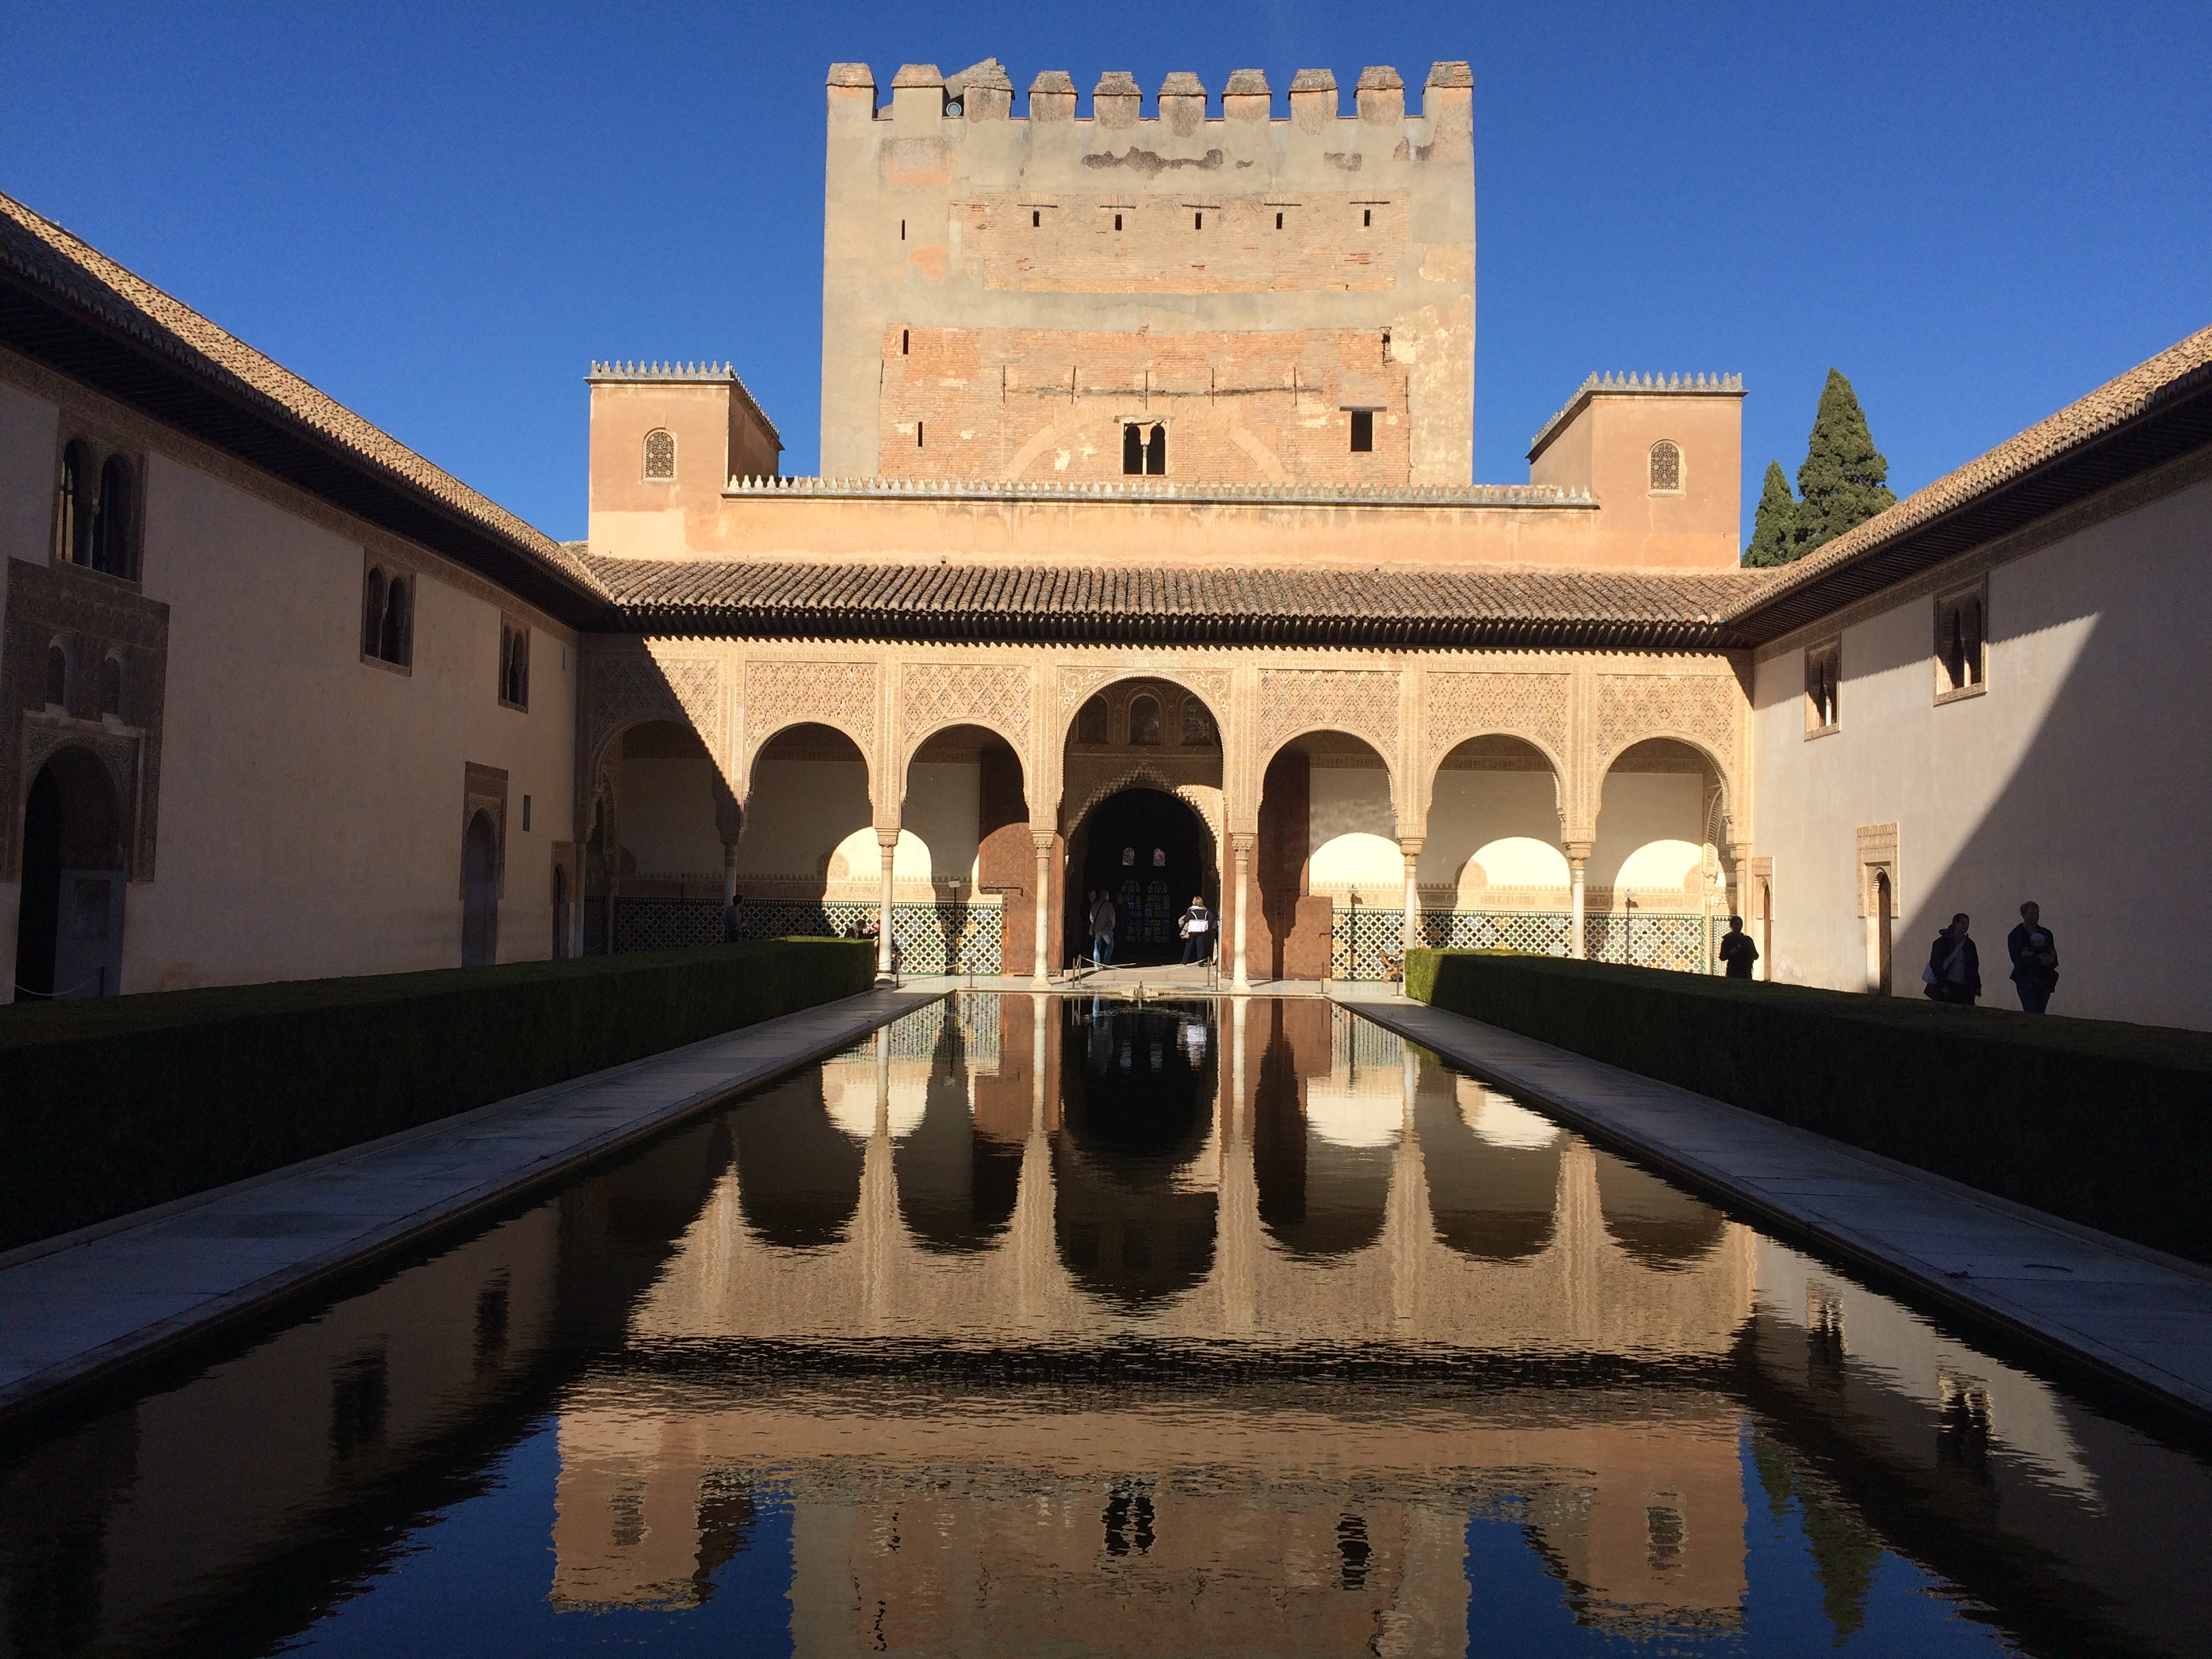 Alhambra Granada Spain - Court of the Myrtles